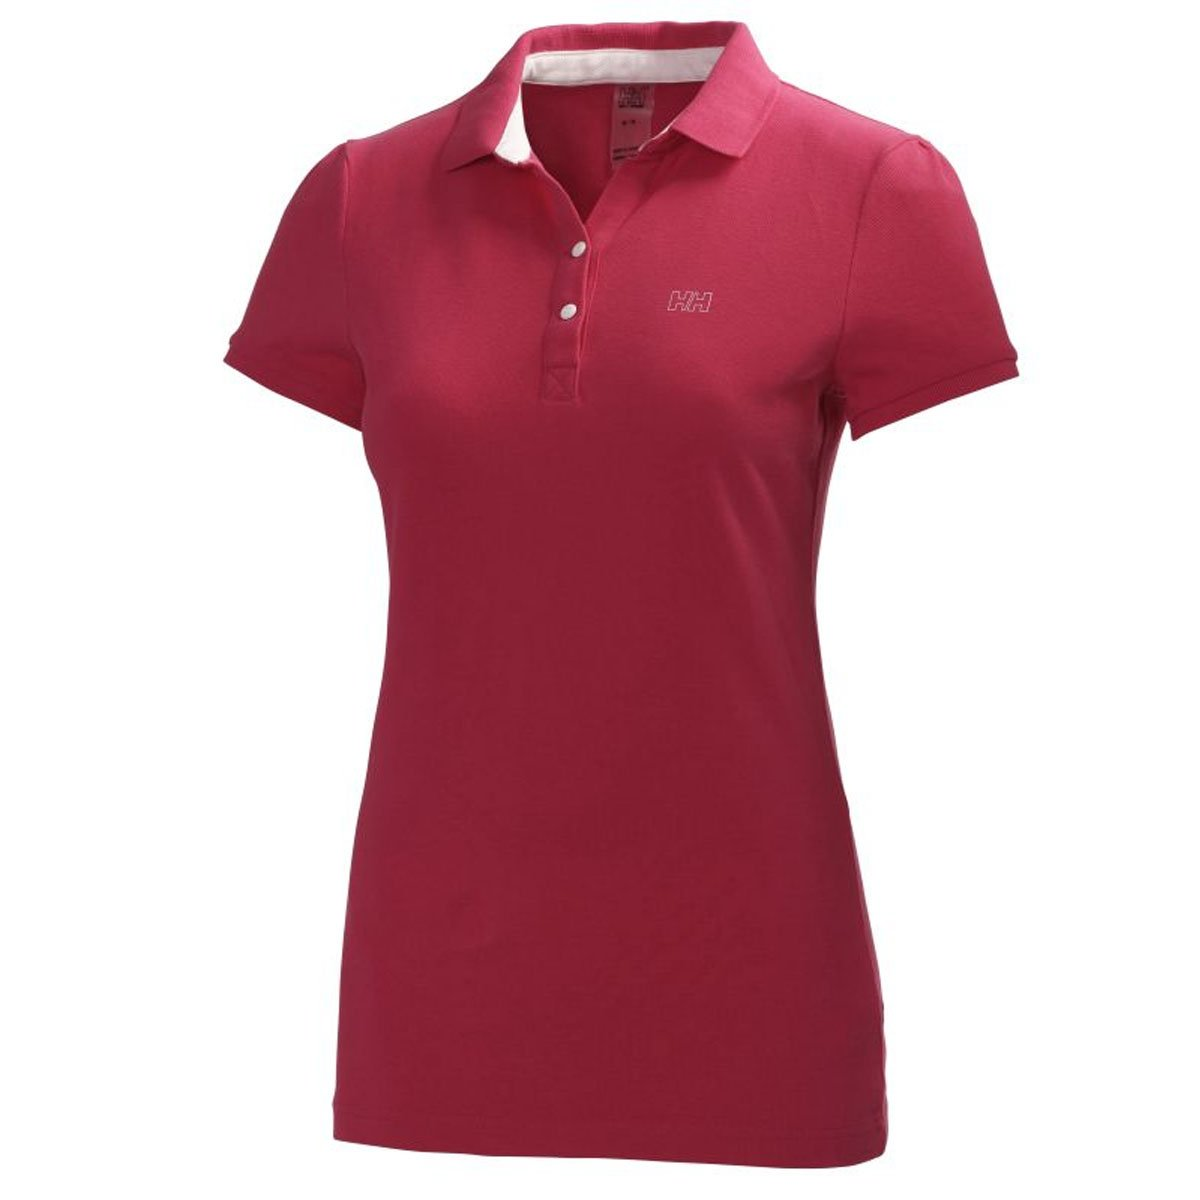 Helly Hansen - Polo - para mujer - 54317, S, Rosado Berry: Amazon ...